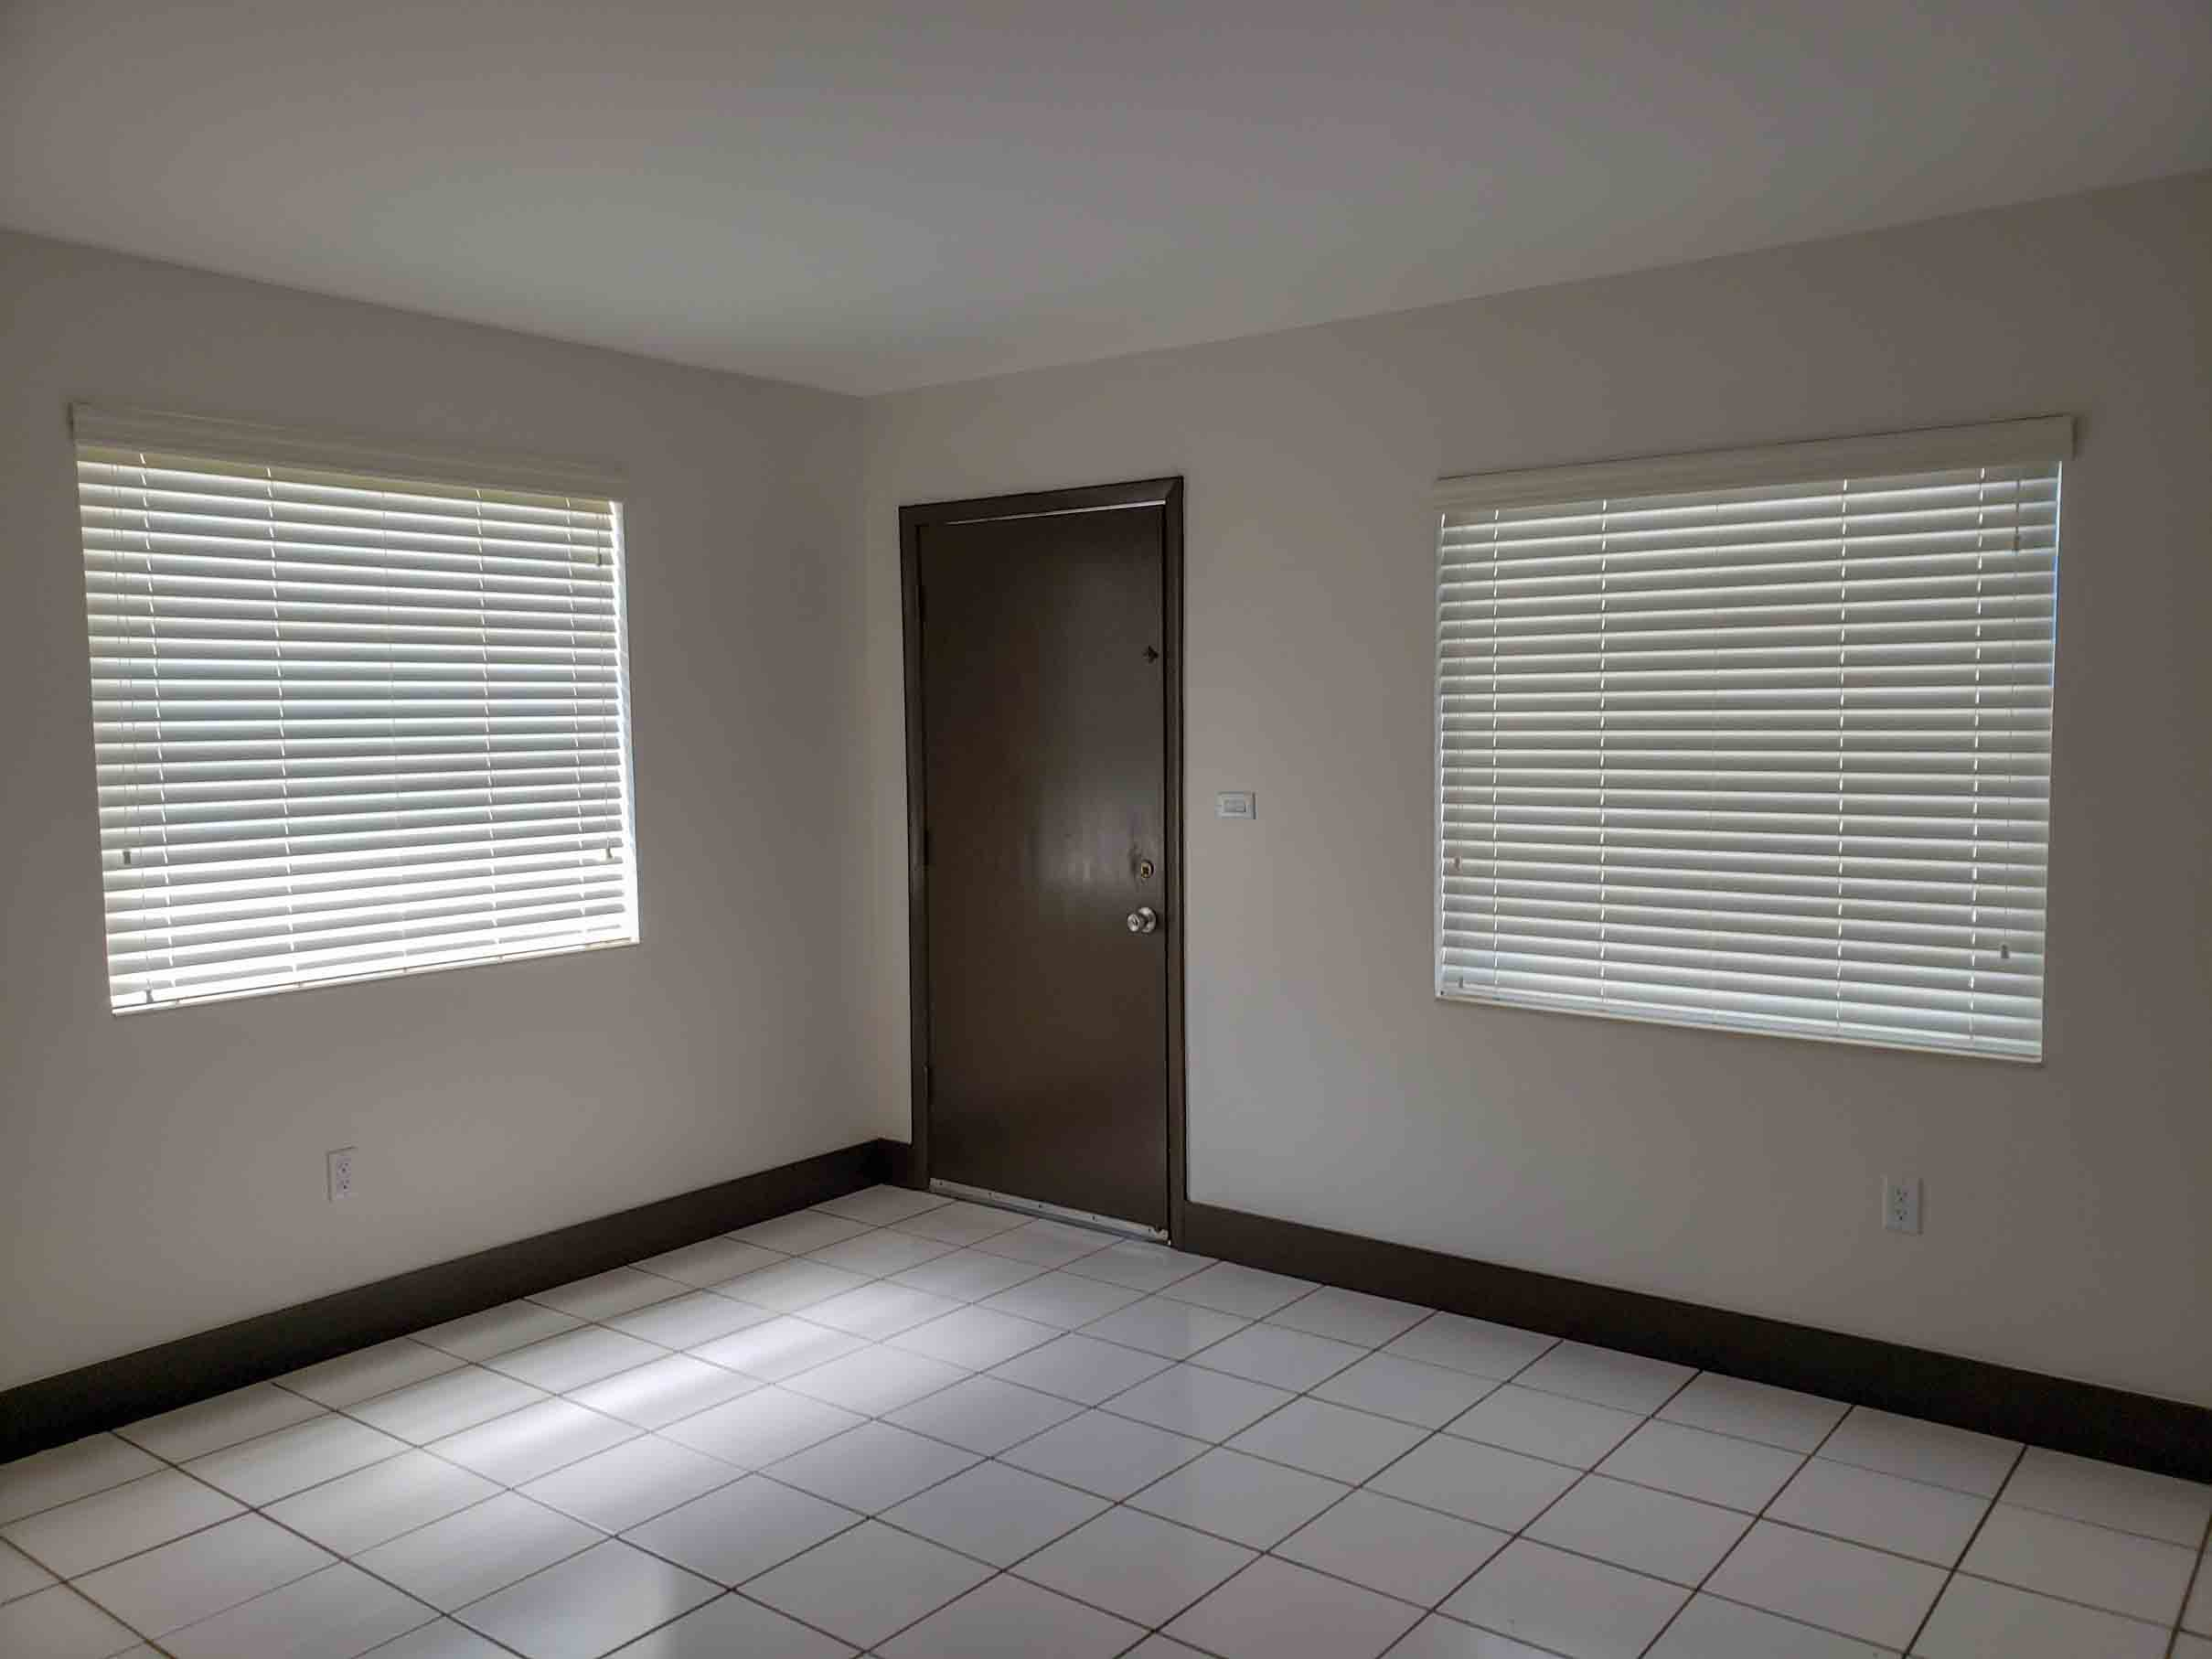 wood blinds gallery WOOD BLINDS GALLERY 20180425 154343